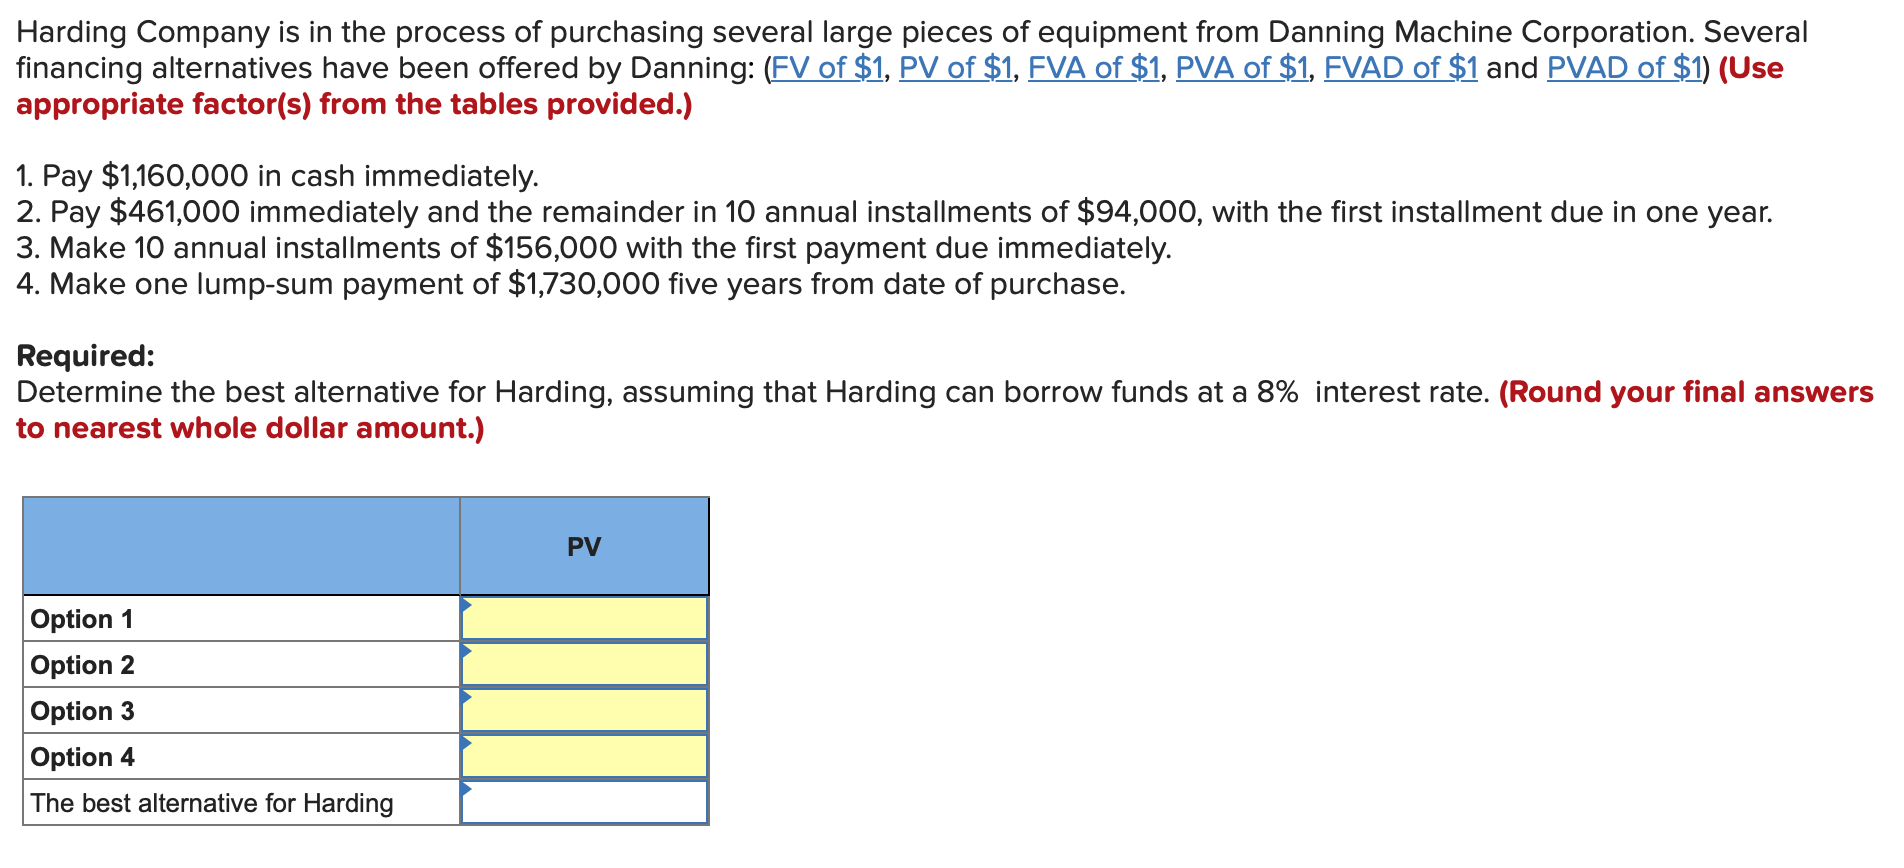 Harding Company is in the process of purchasing several large pieces of equipment from Danning Machine Corporation. Several f